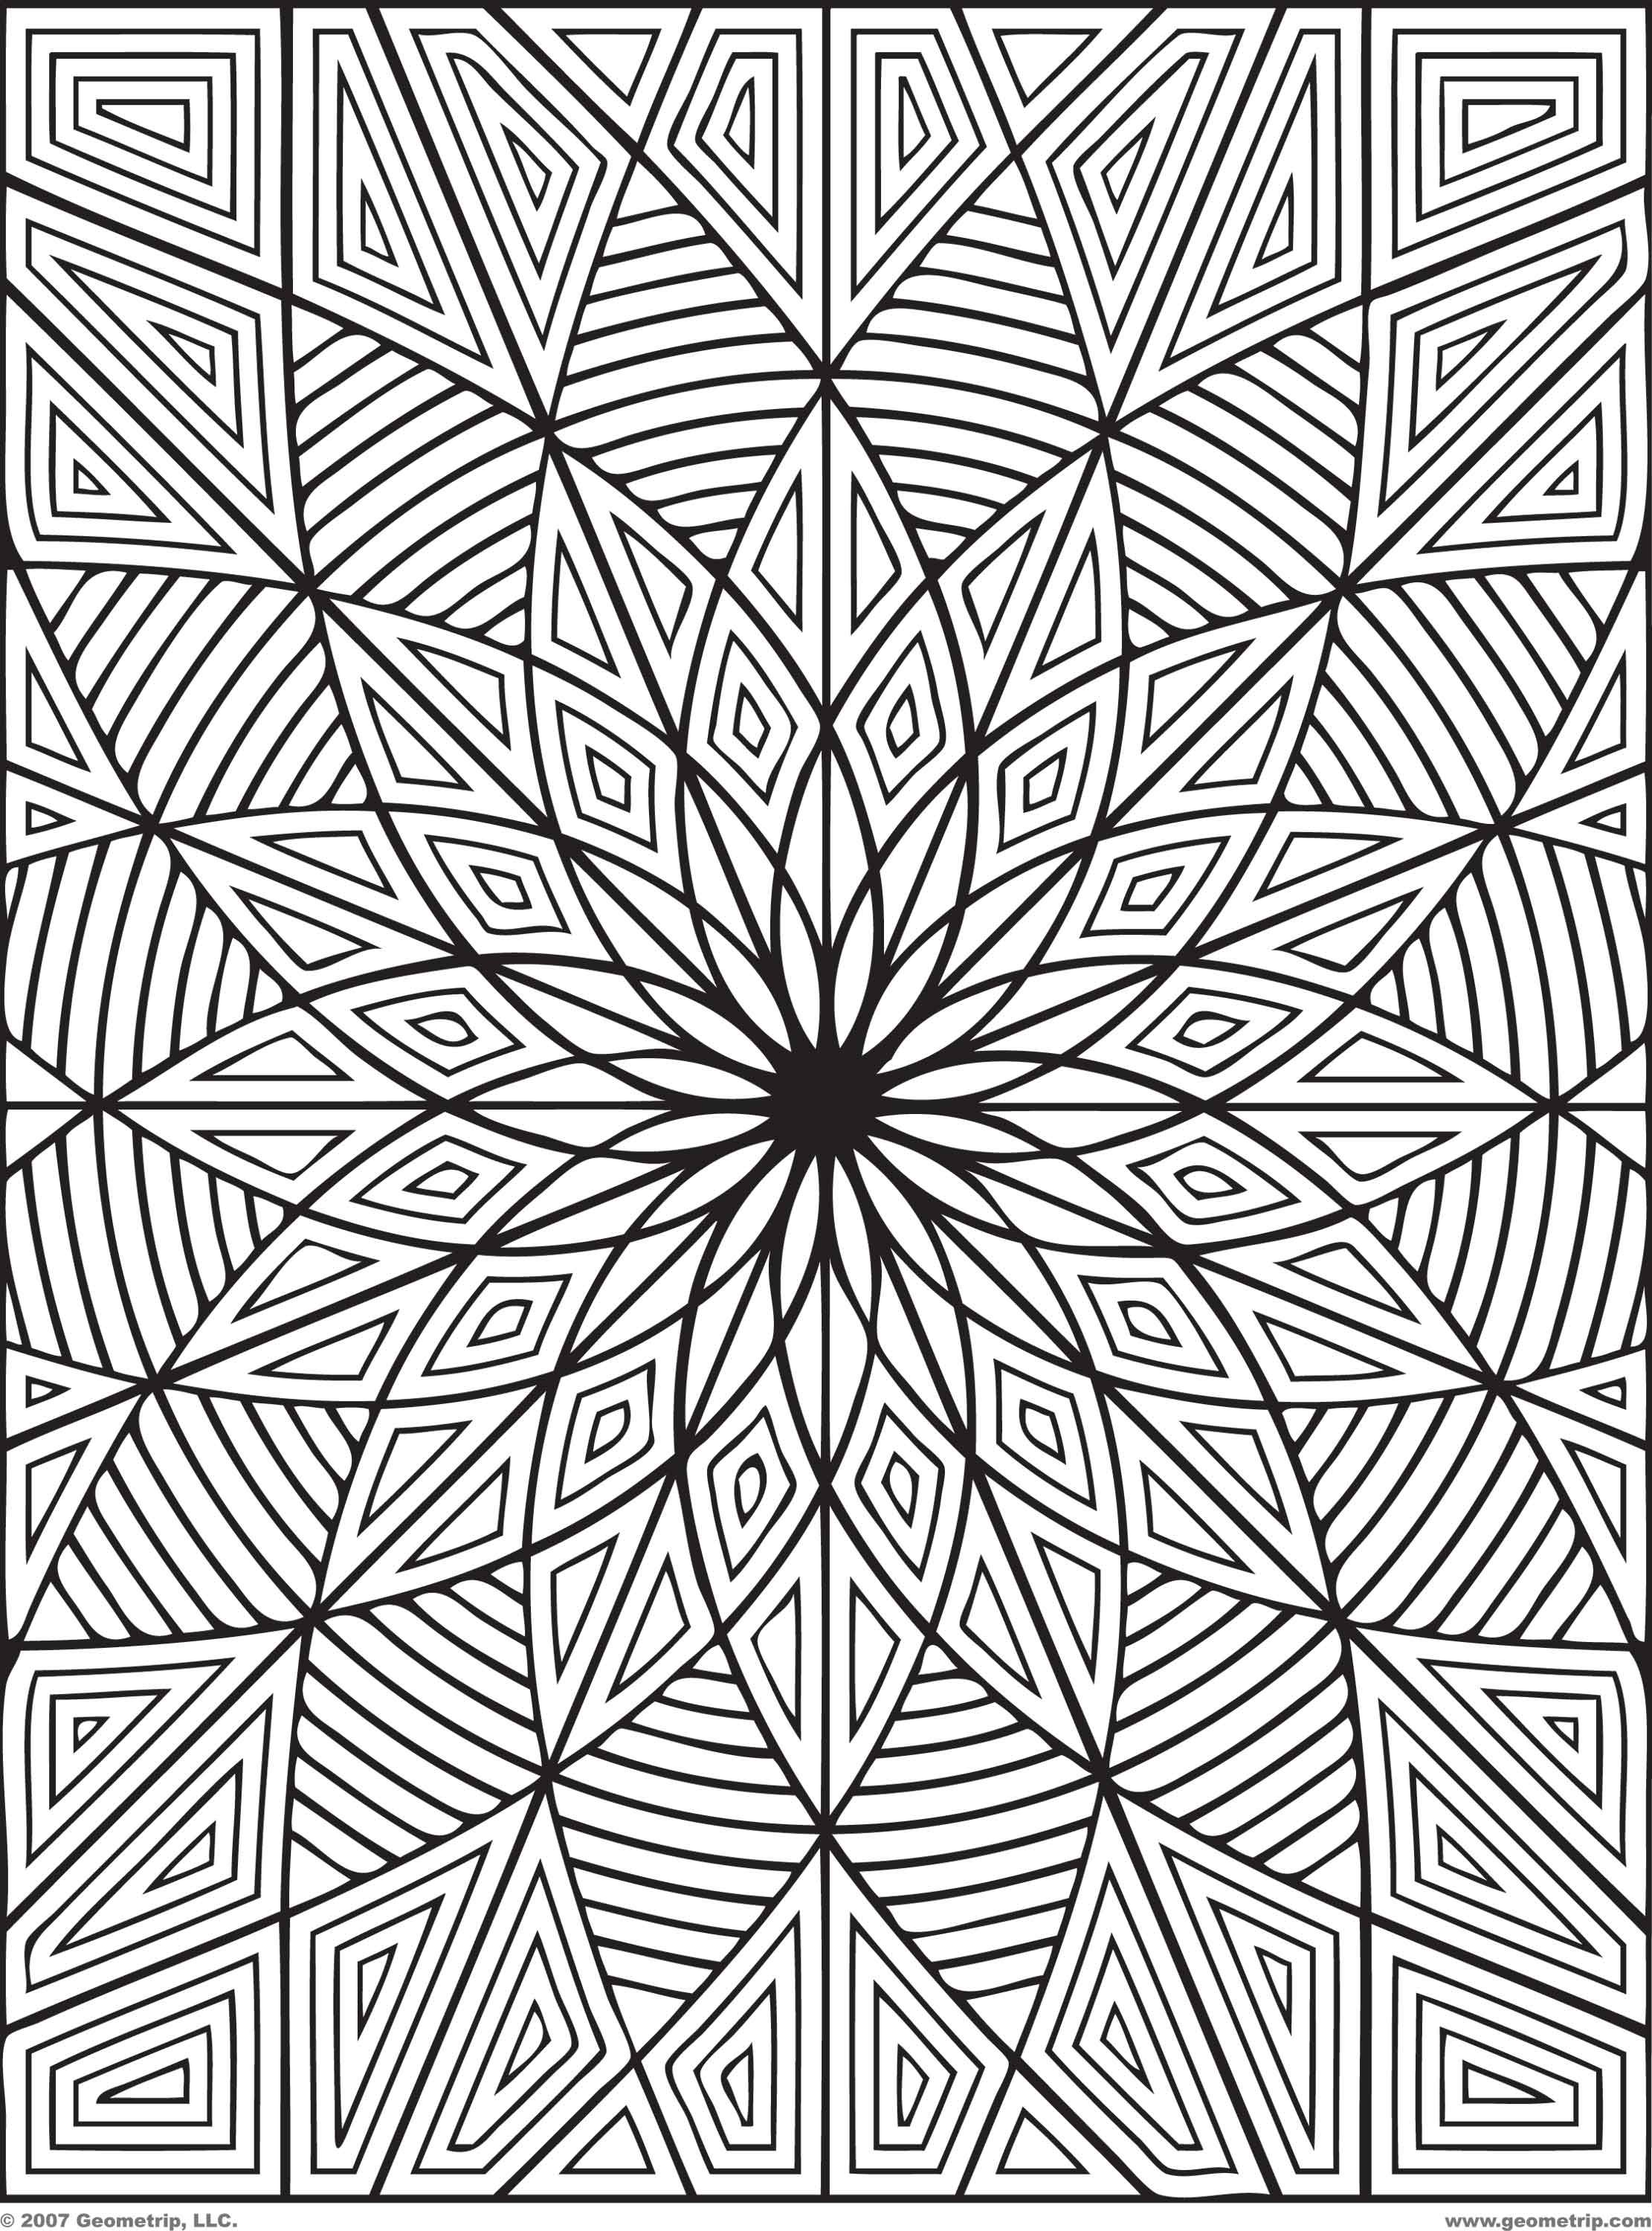 For Your Coloring Pleasure Geometric Coloring Pages Pattern Coloring Pages Coloring Pages